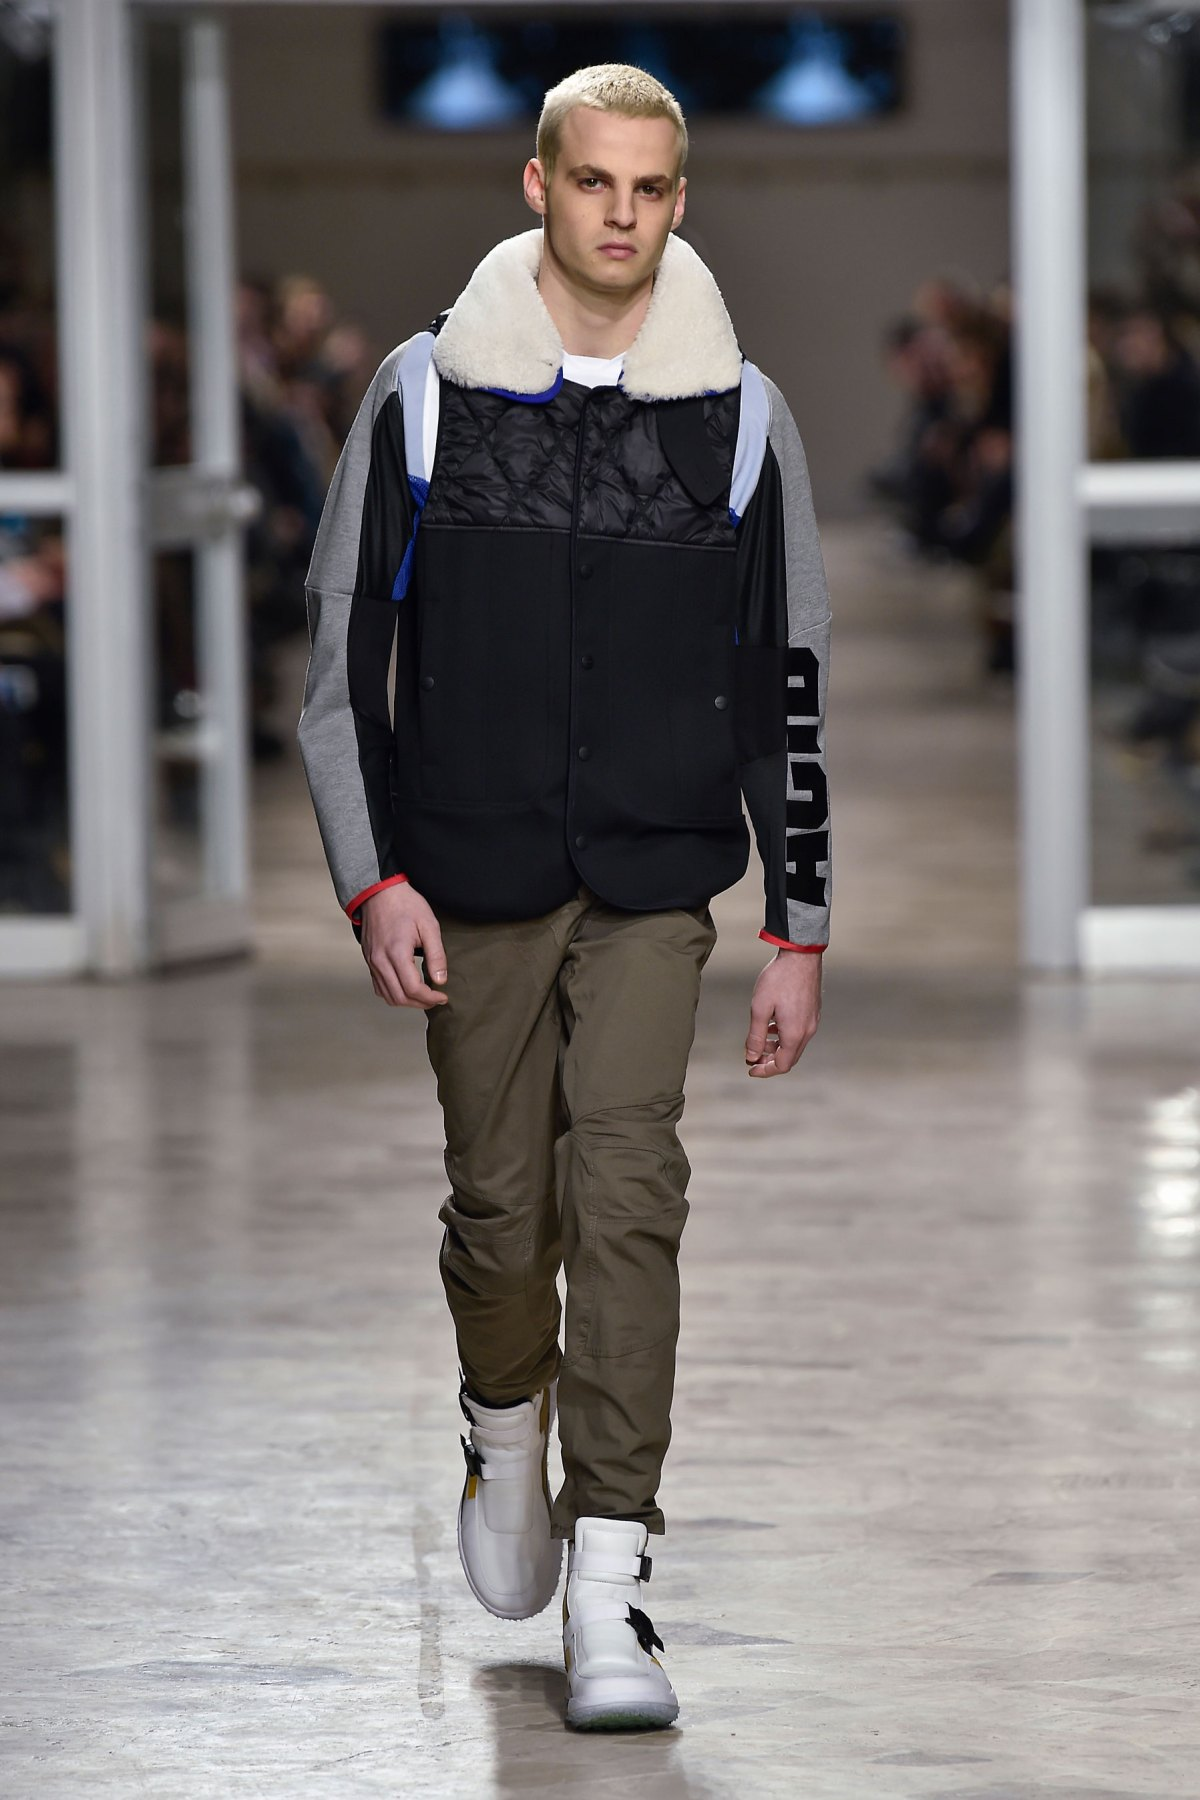 Tim Coppens PU m RF17 0773